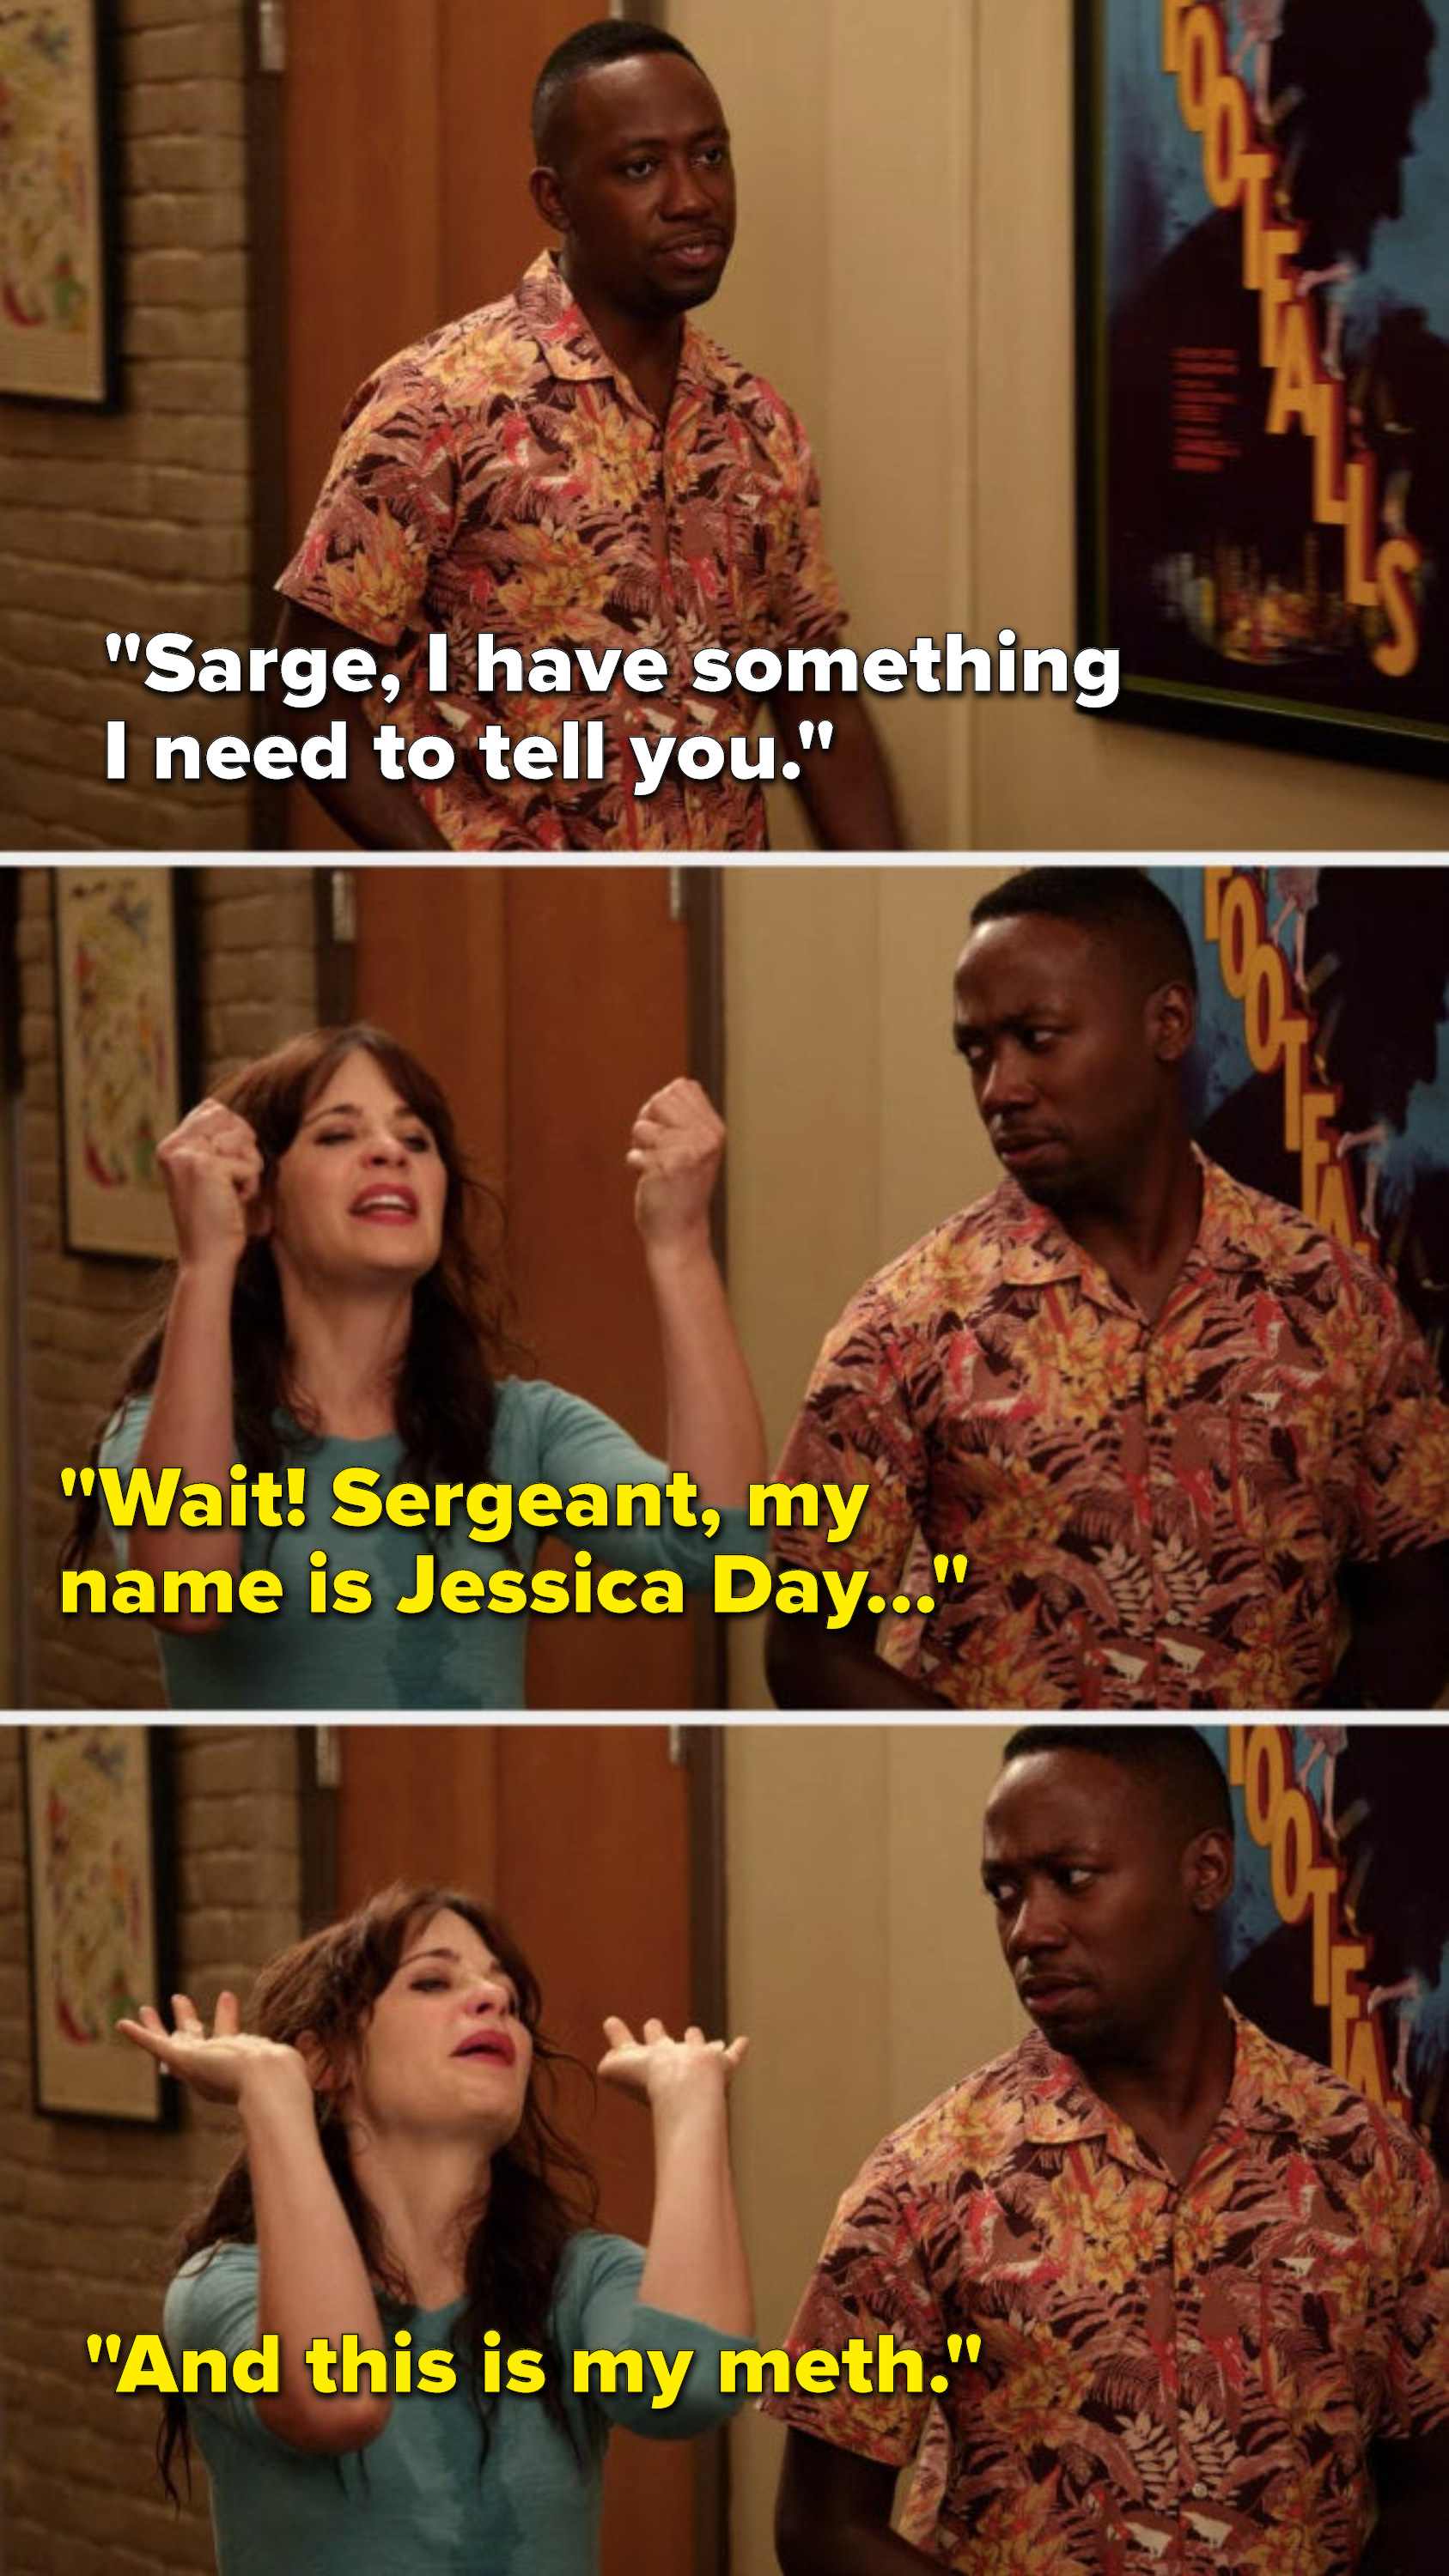 """Winston says, """"Sarge, I have something I need to tell you,"""" but Jess says, """"Wait, sergeant, my name is Jessica Day, and this is my meth"""""""